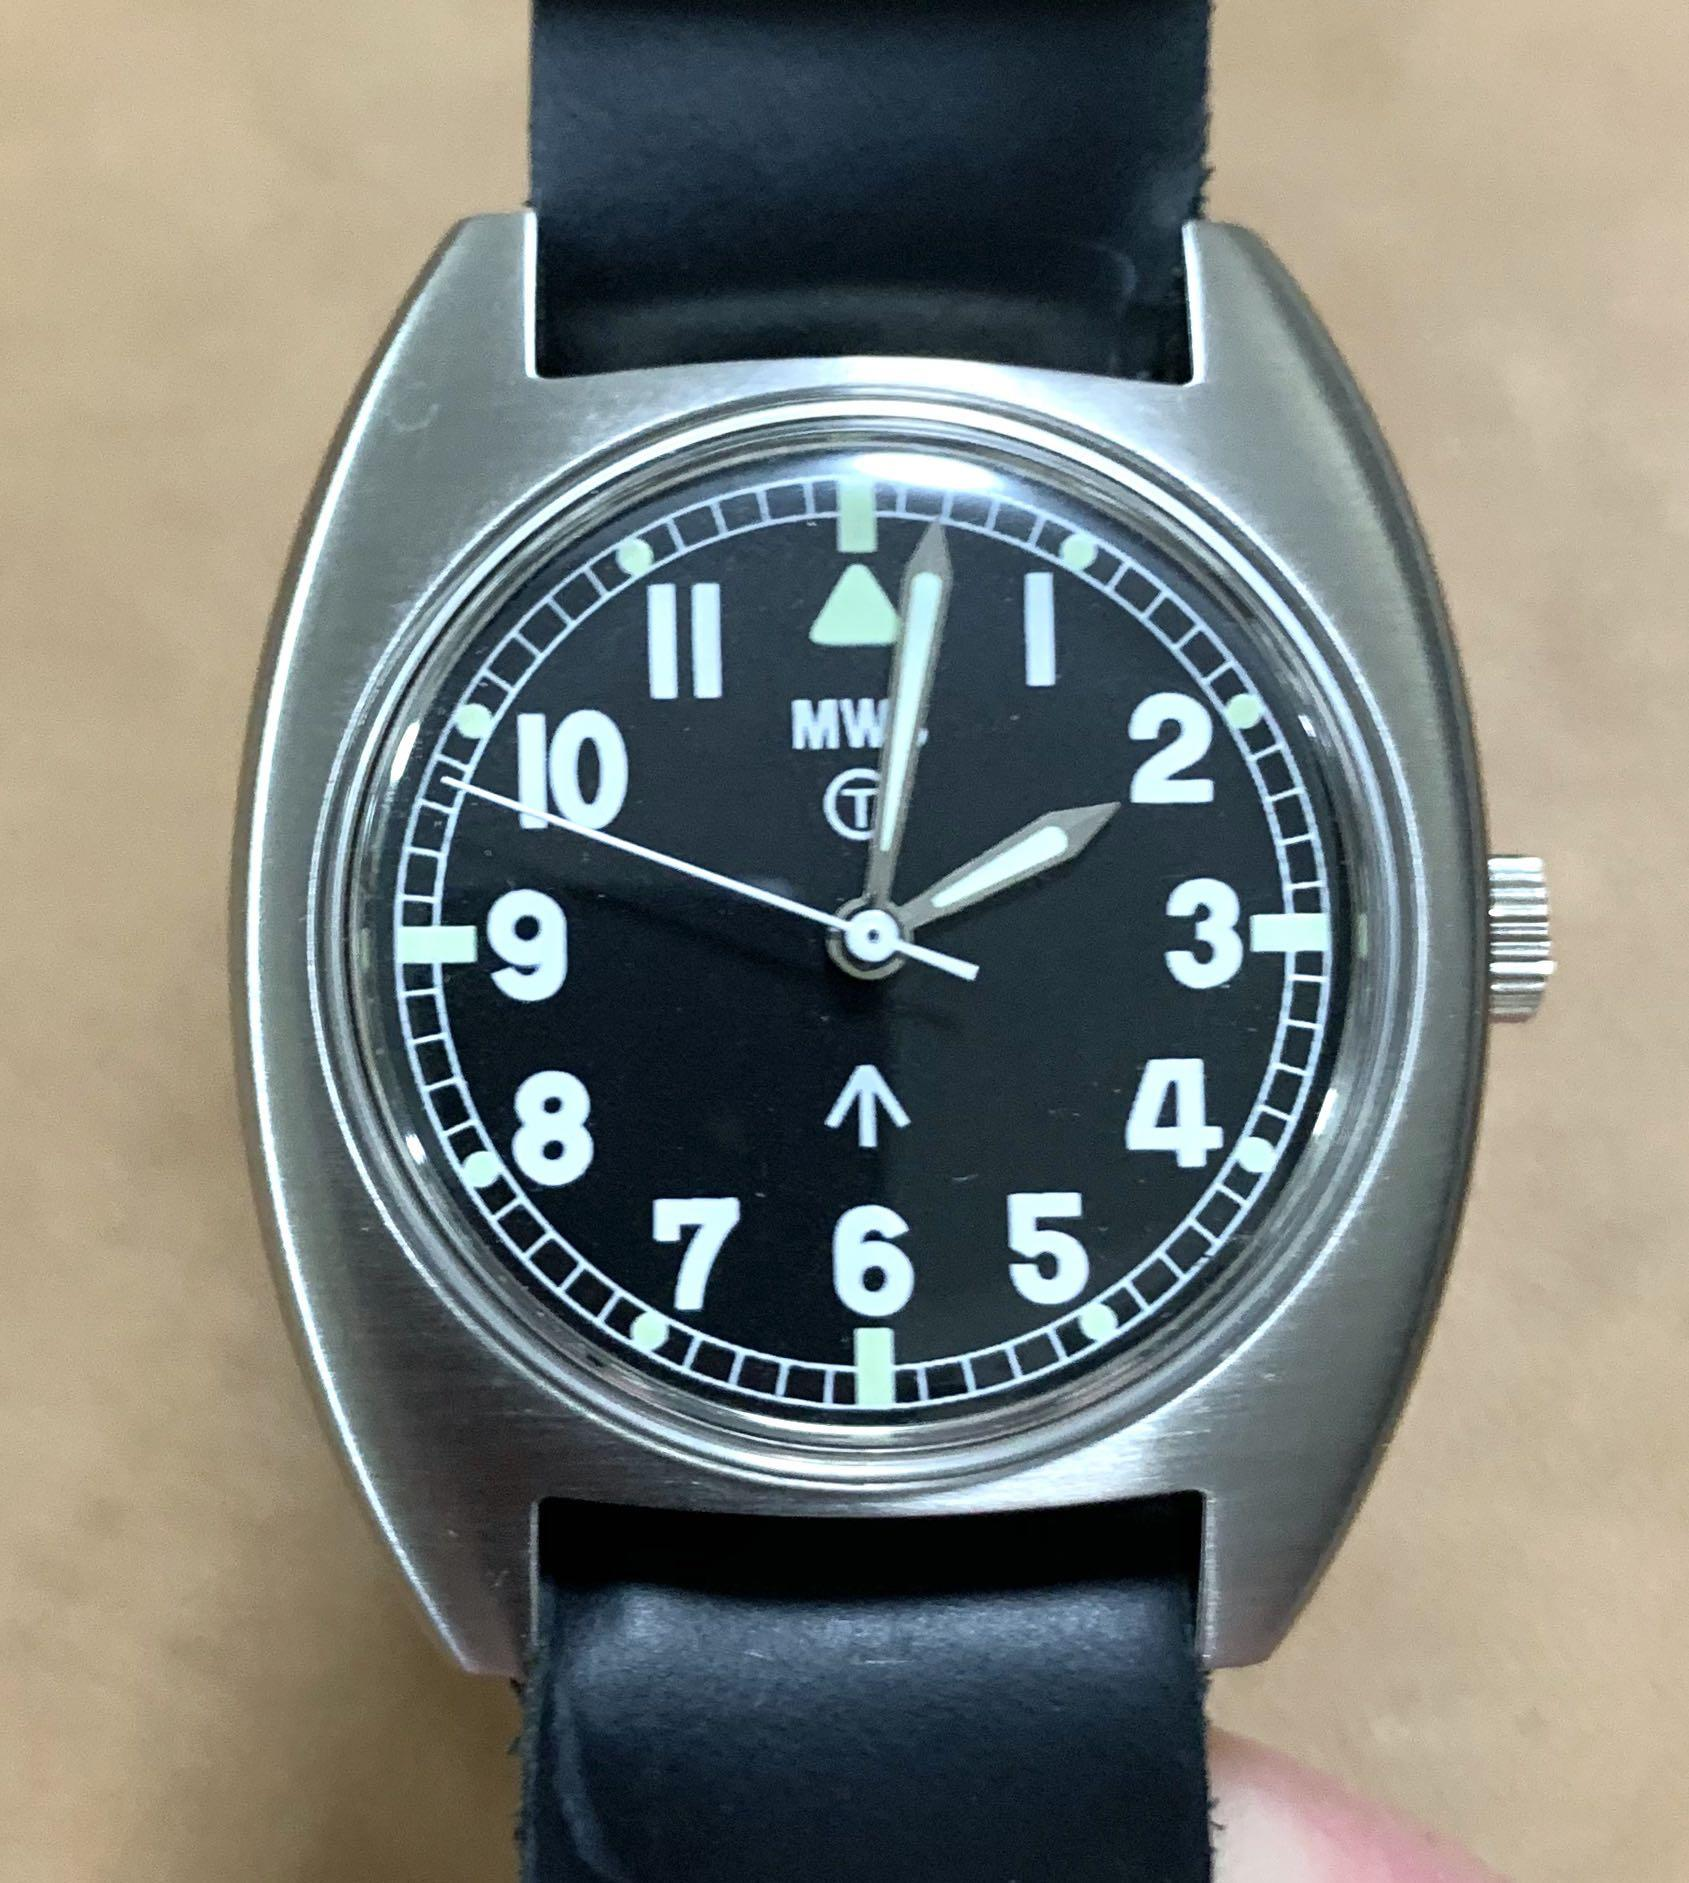 [AVAILABLE] Authentic BNIB NOS Unbelievably Pristine 1984 British UK RAF Royal Military-issued Milspec Watch 40mm (42mm lug-to-lug) with original Army issued tin box😍, 1 brand new brand new NATO strap, handwind movement